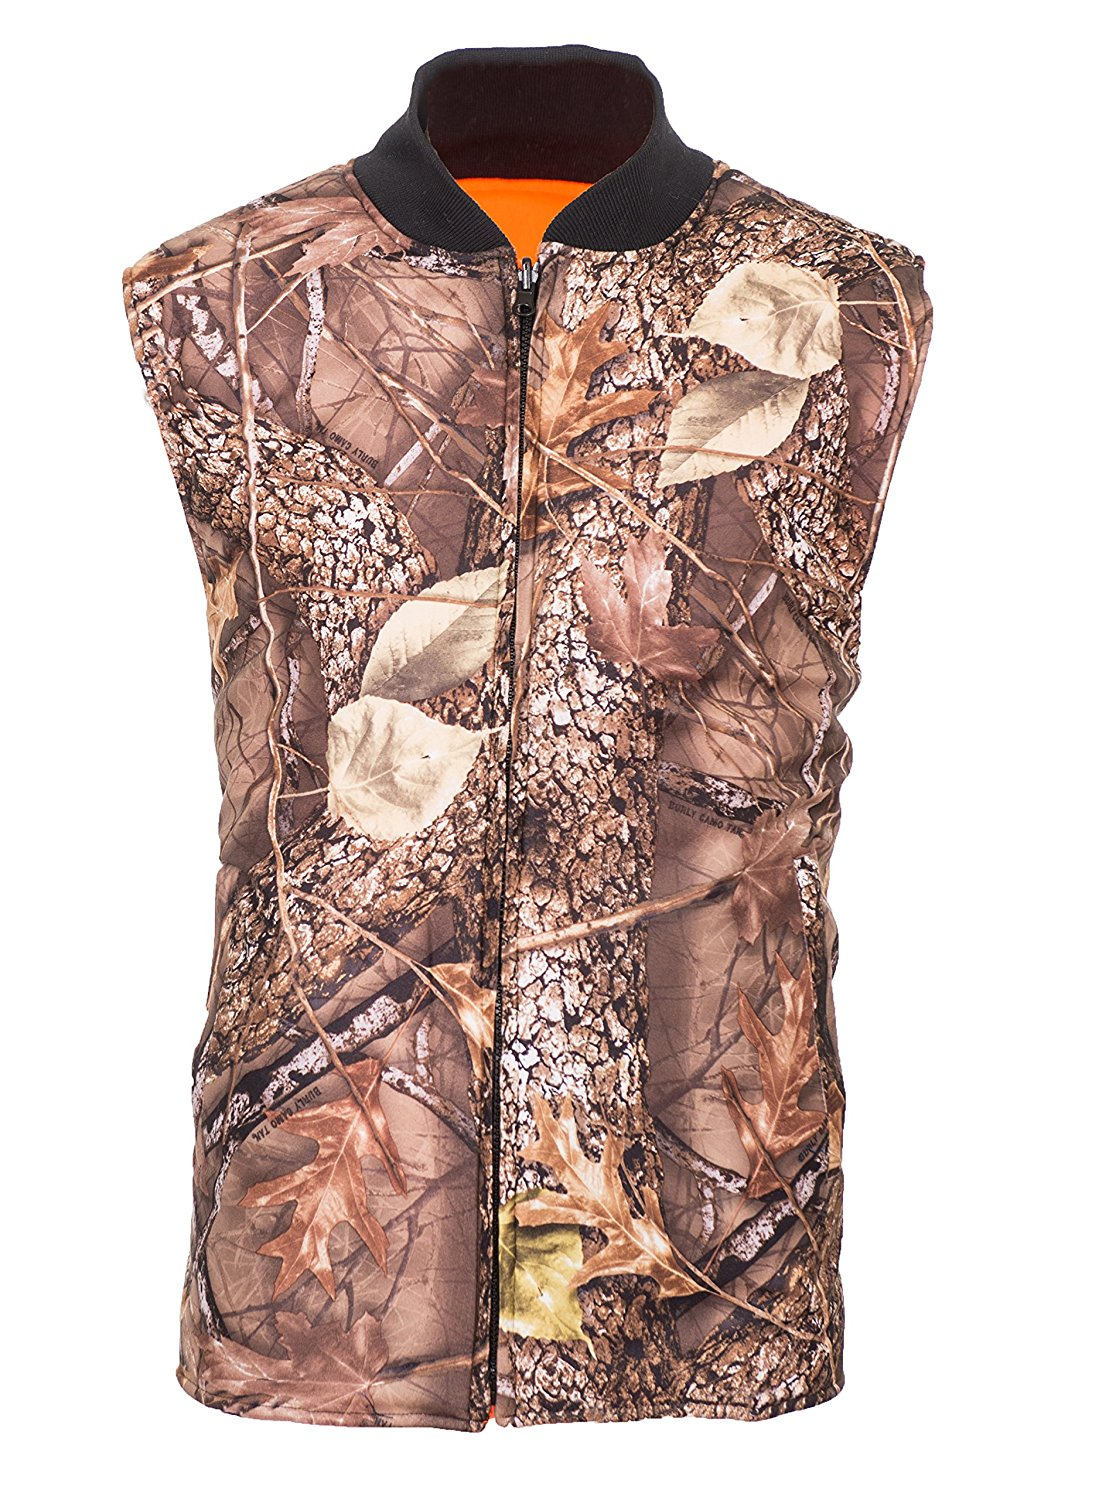 Reversible Burly Tan Camo Blaze Orange Insulated Hunting Vest (Medium) by WFS